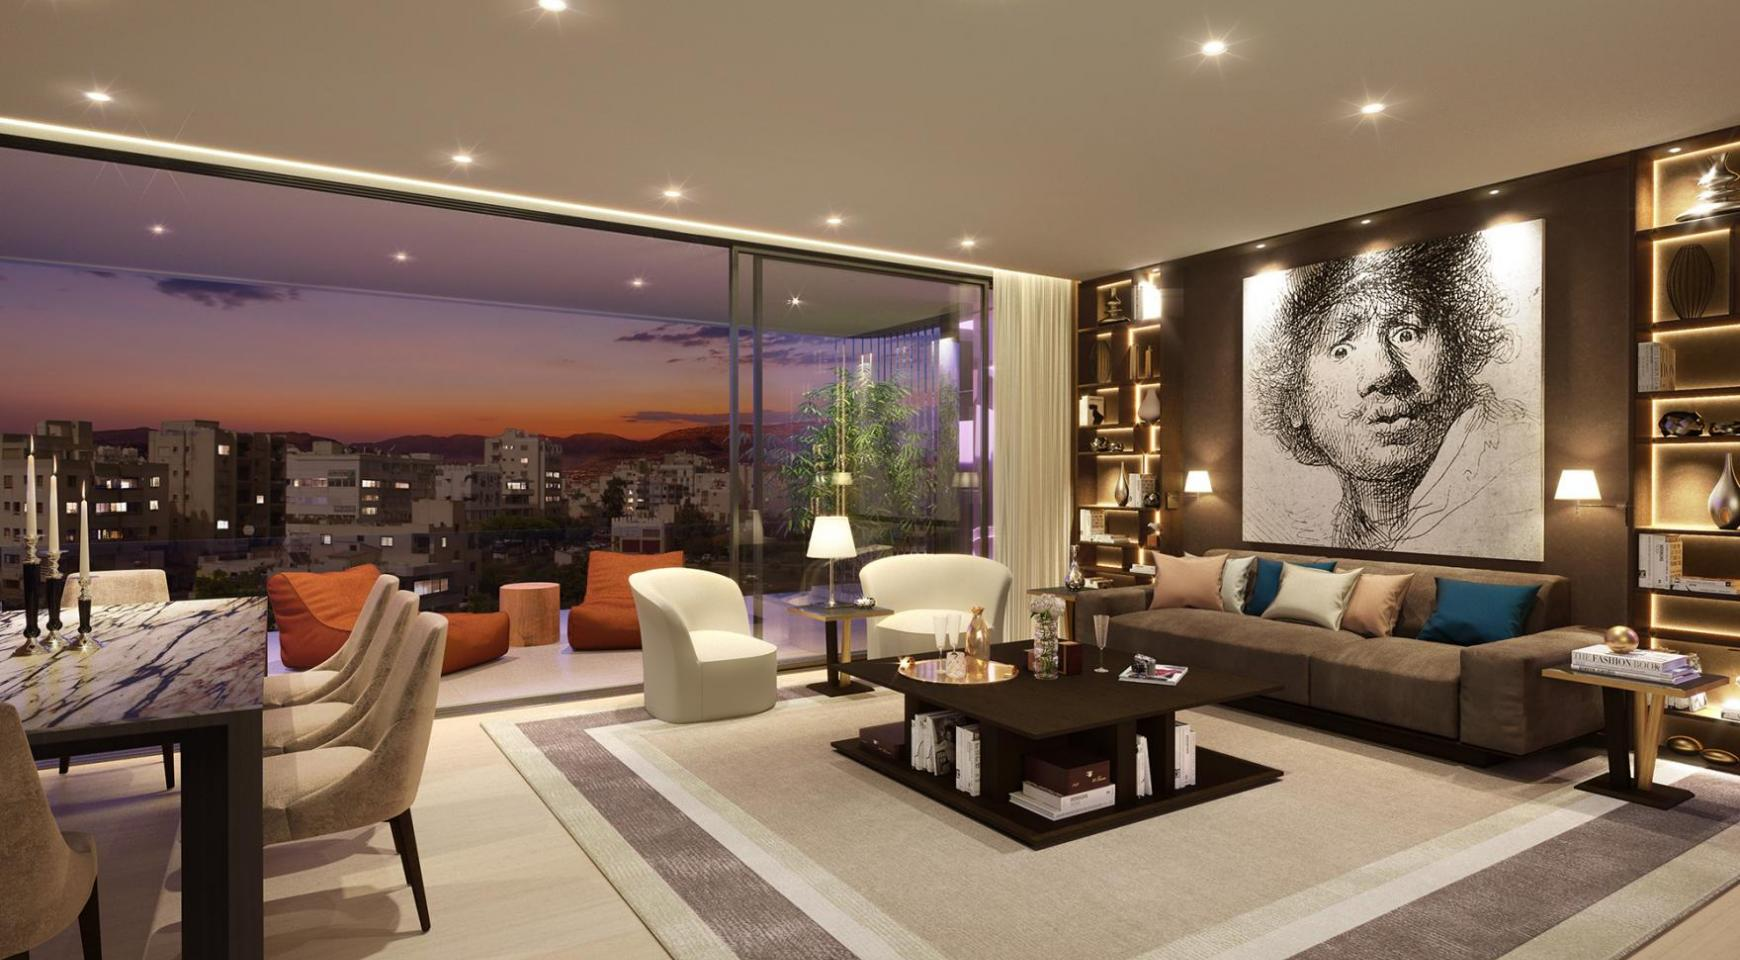 New 3 Bedroom Apartment with a Private Roof Garden in the City Centre - 2